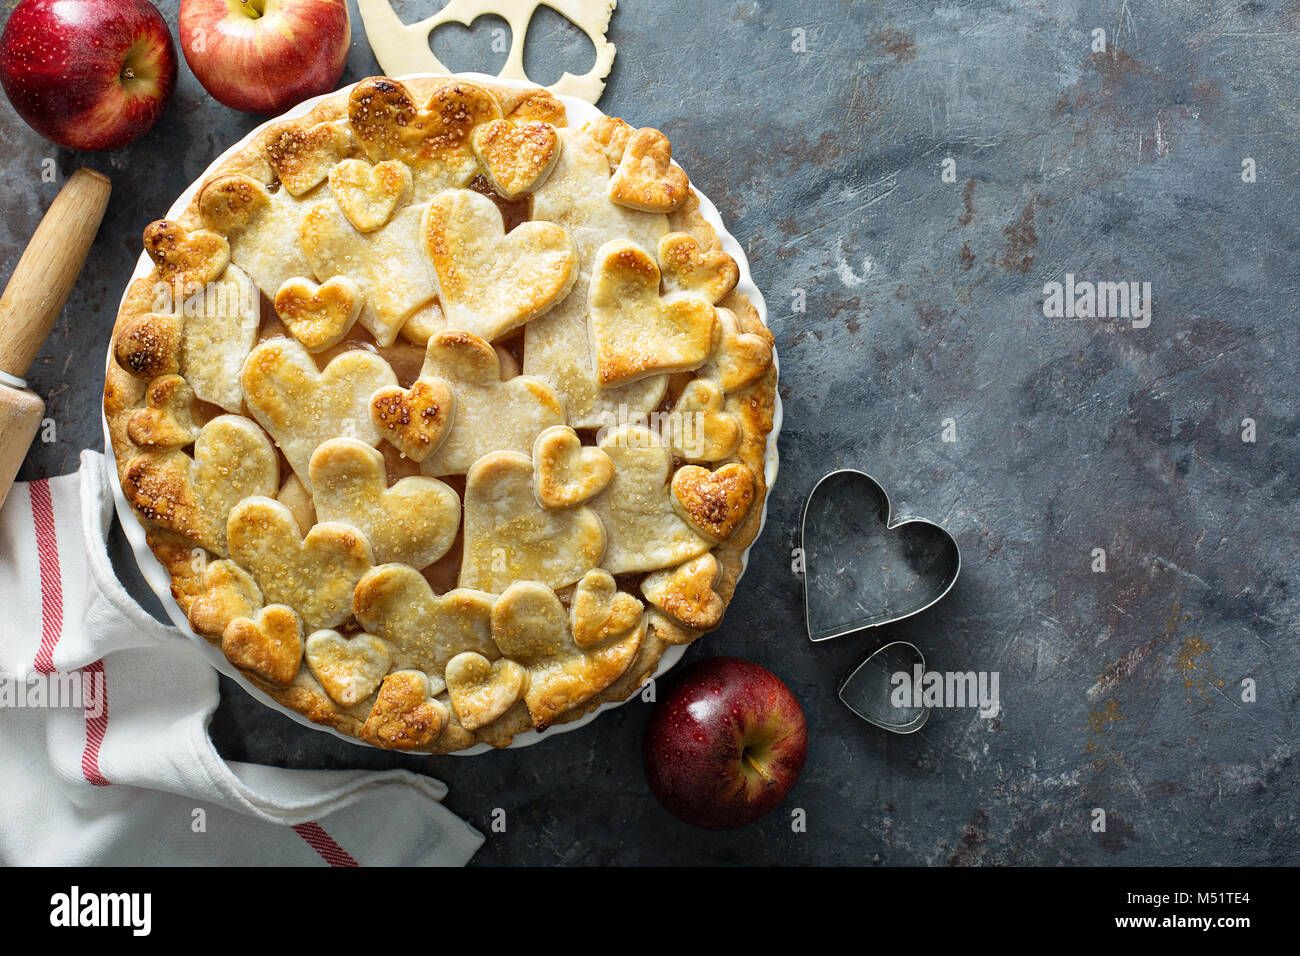 Apple pie with hearts shaped crust homemade treat for Valentines Day - Stock Image